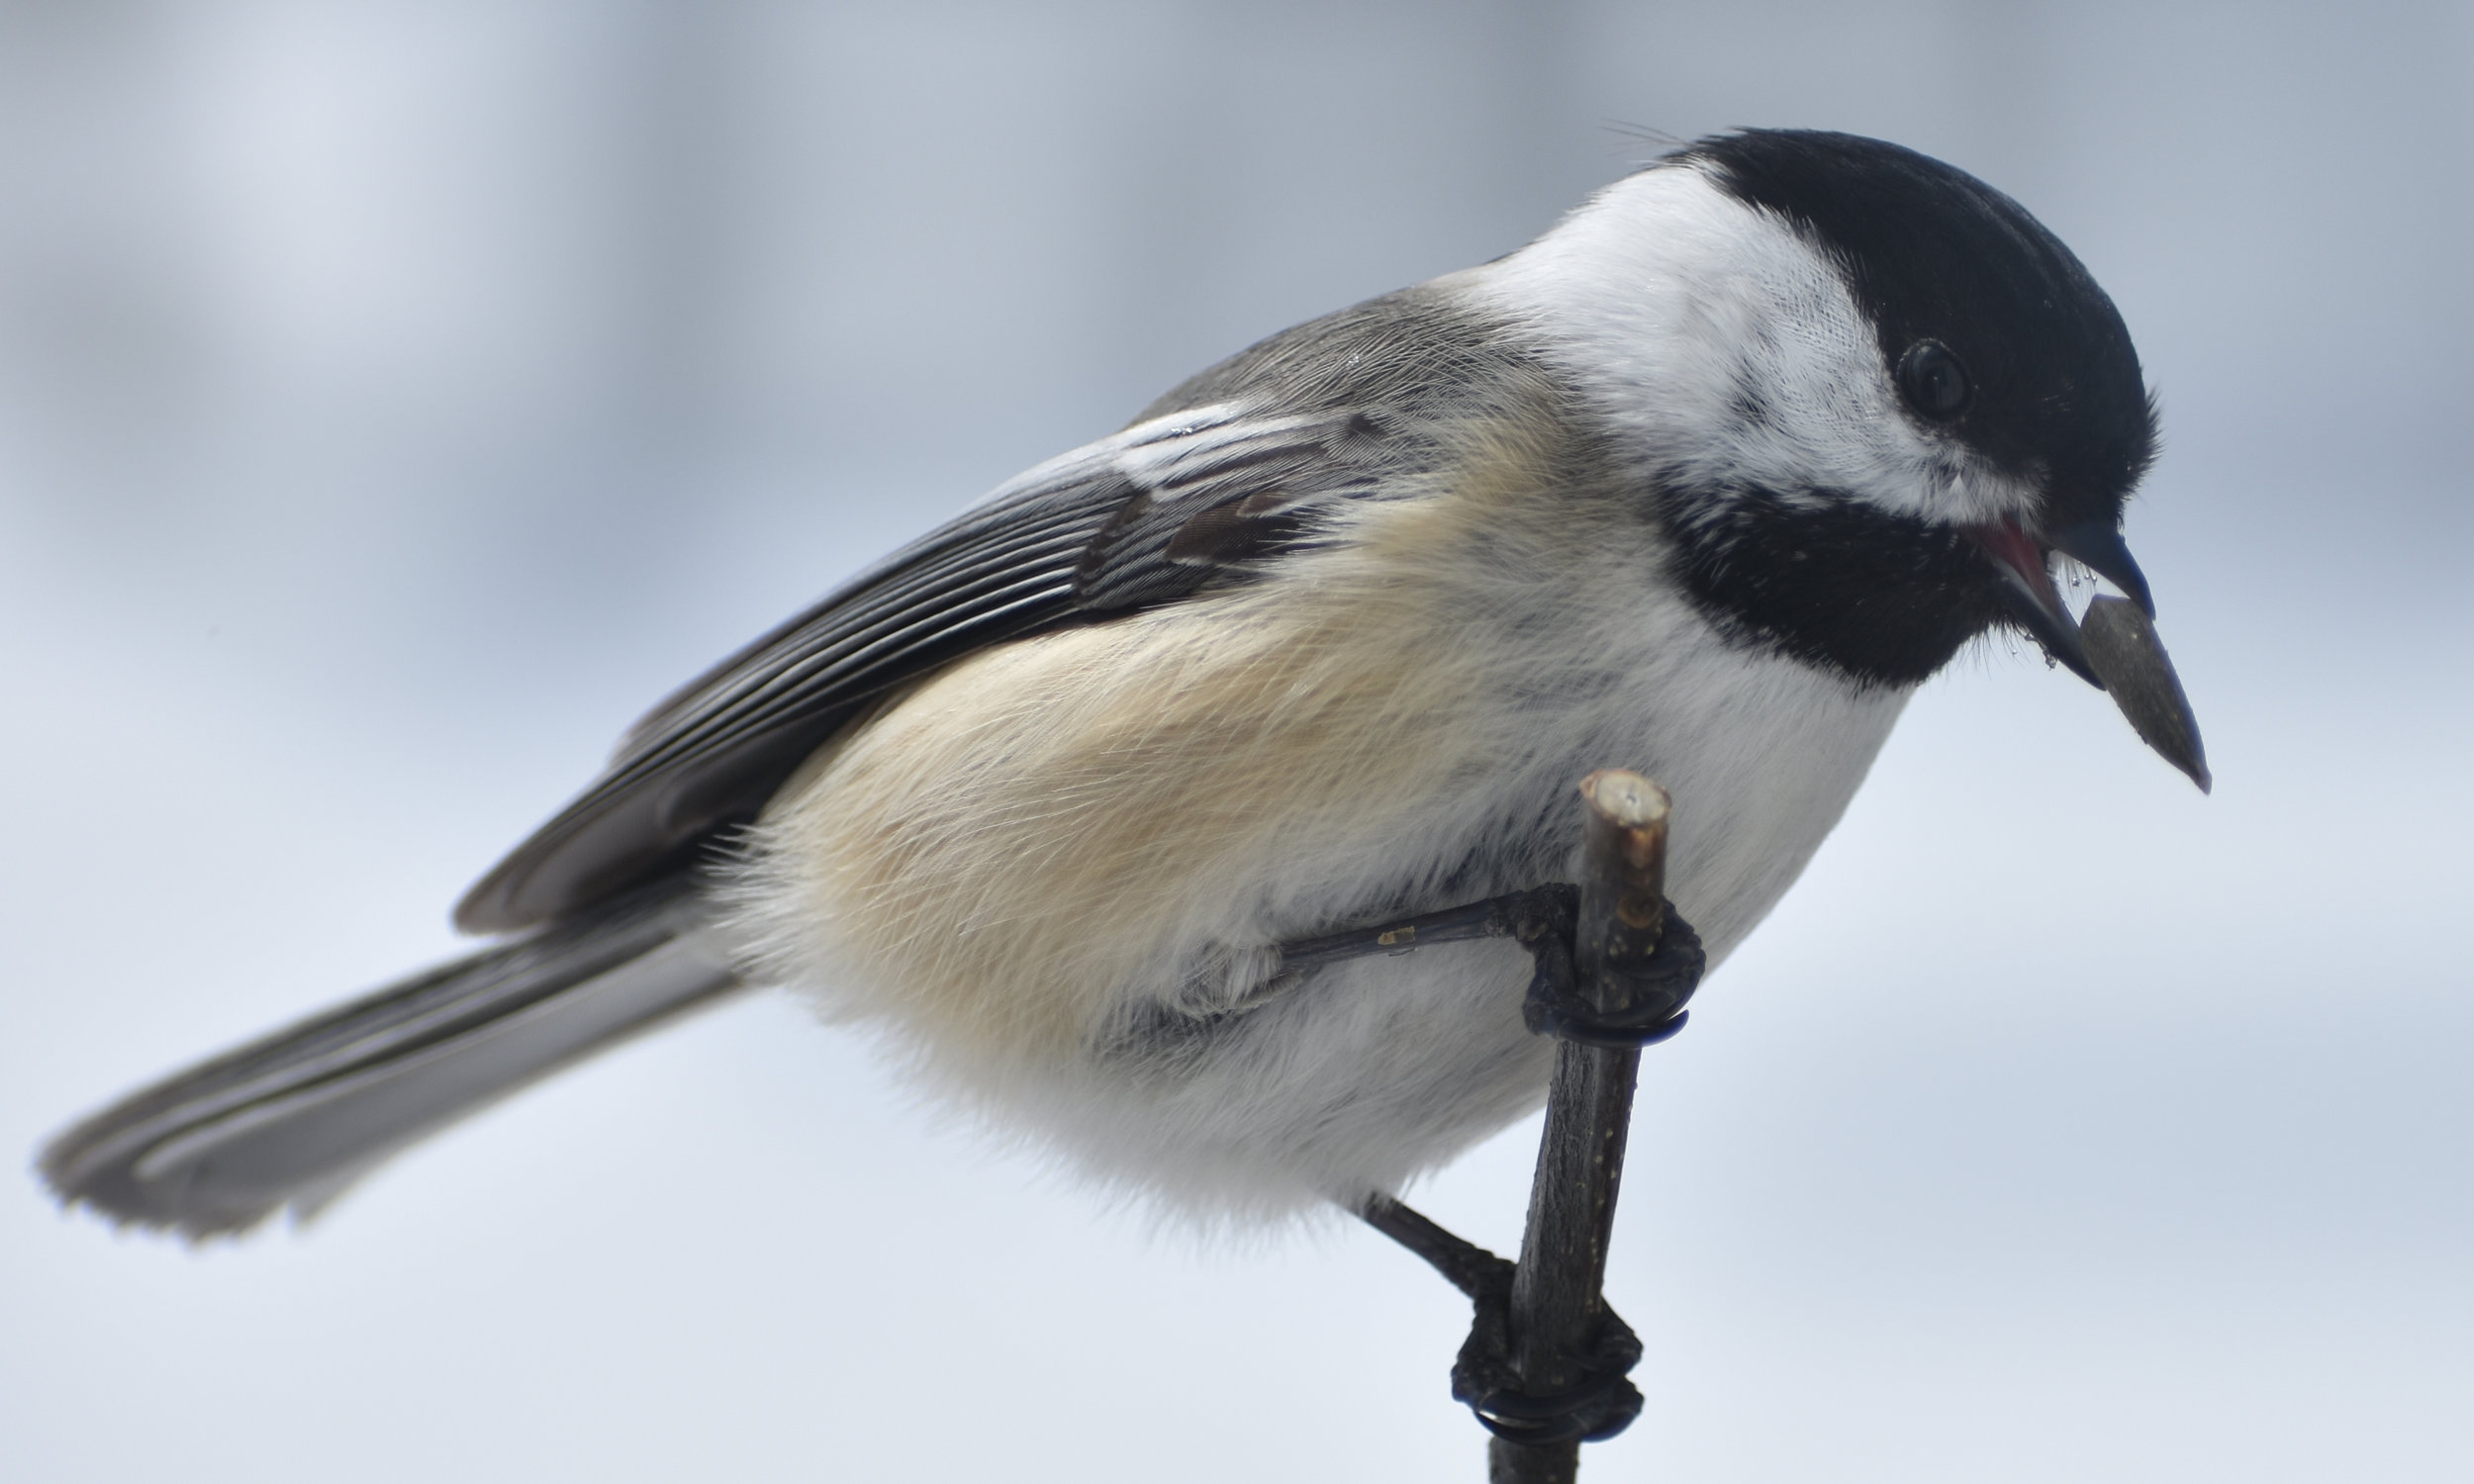 Black-Capped Chickadee eating Sunflower Seed